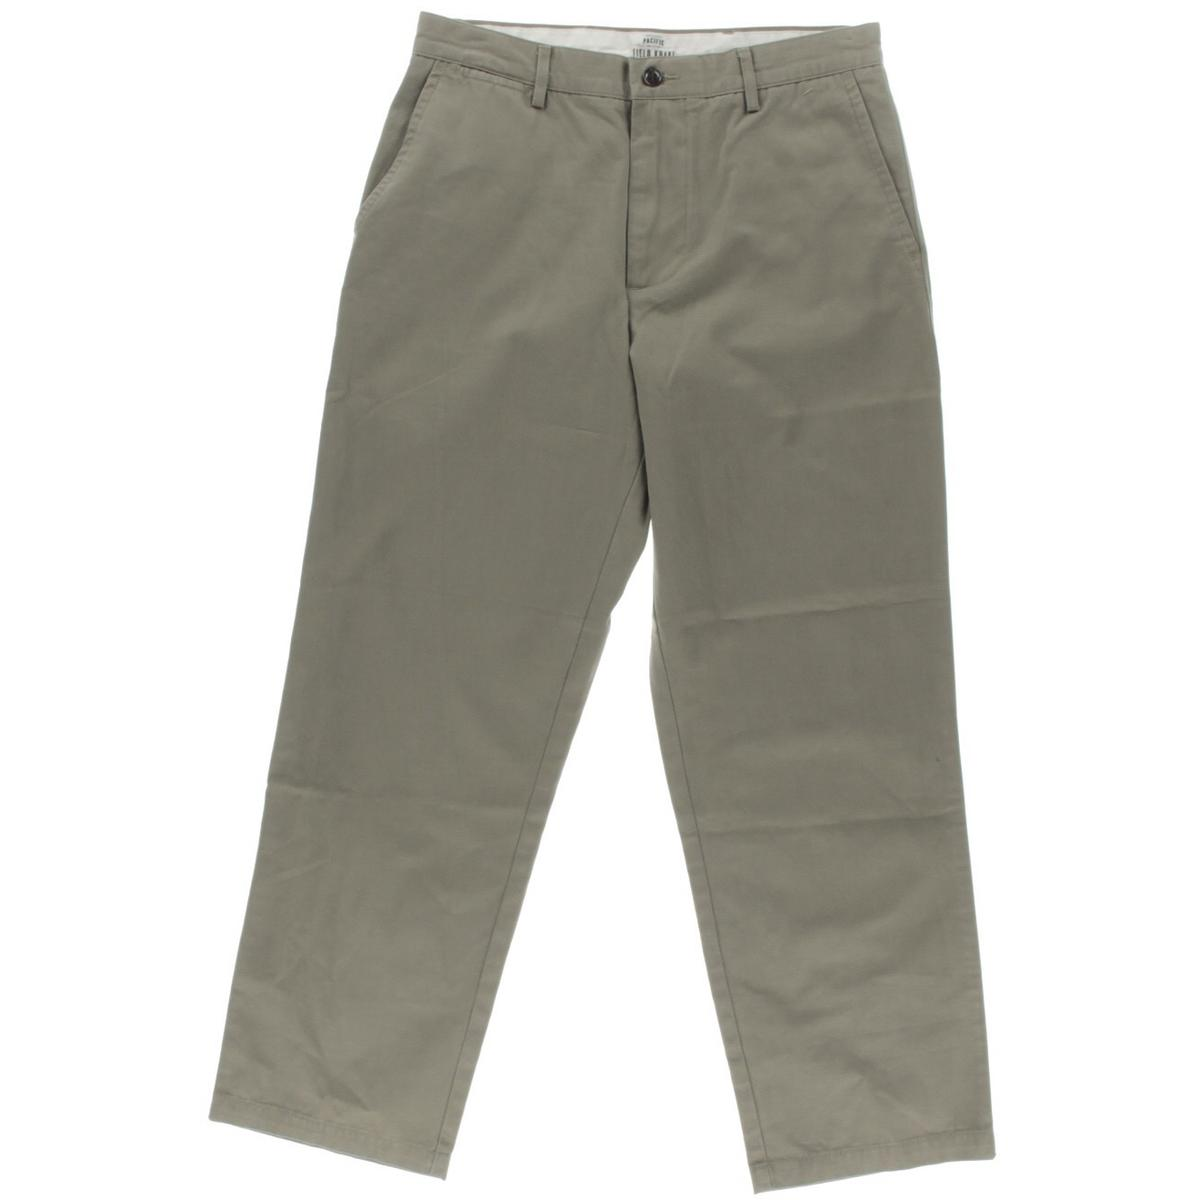 Dockers Mens Cotton Flat Front Khaki Pants by Dockers